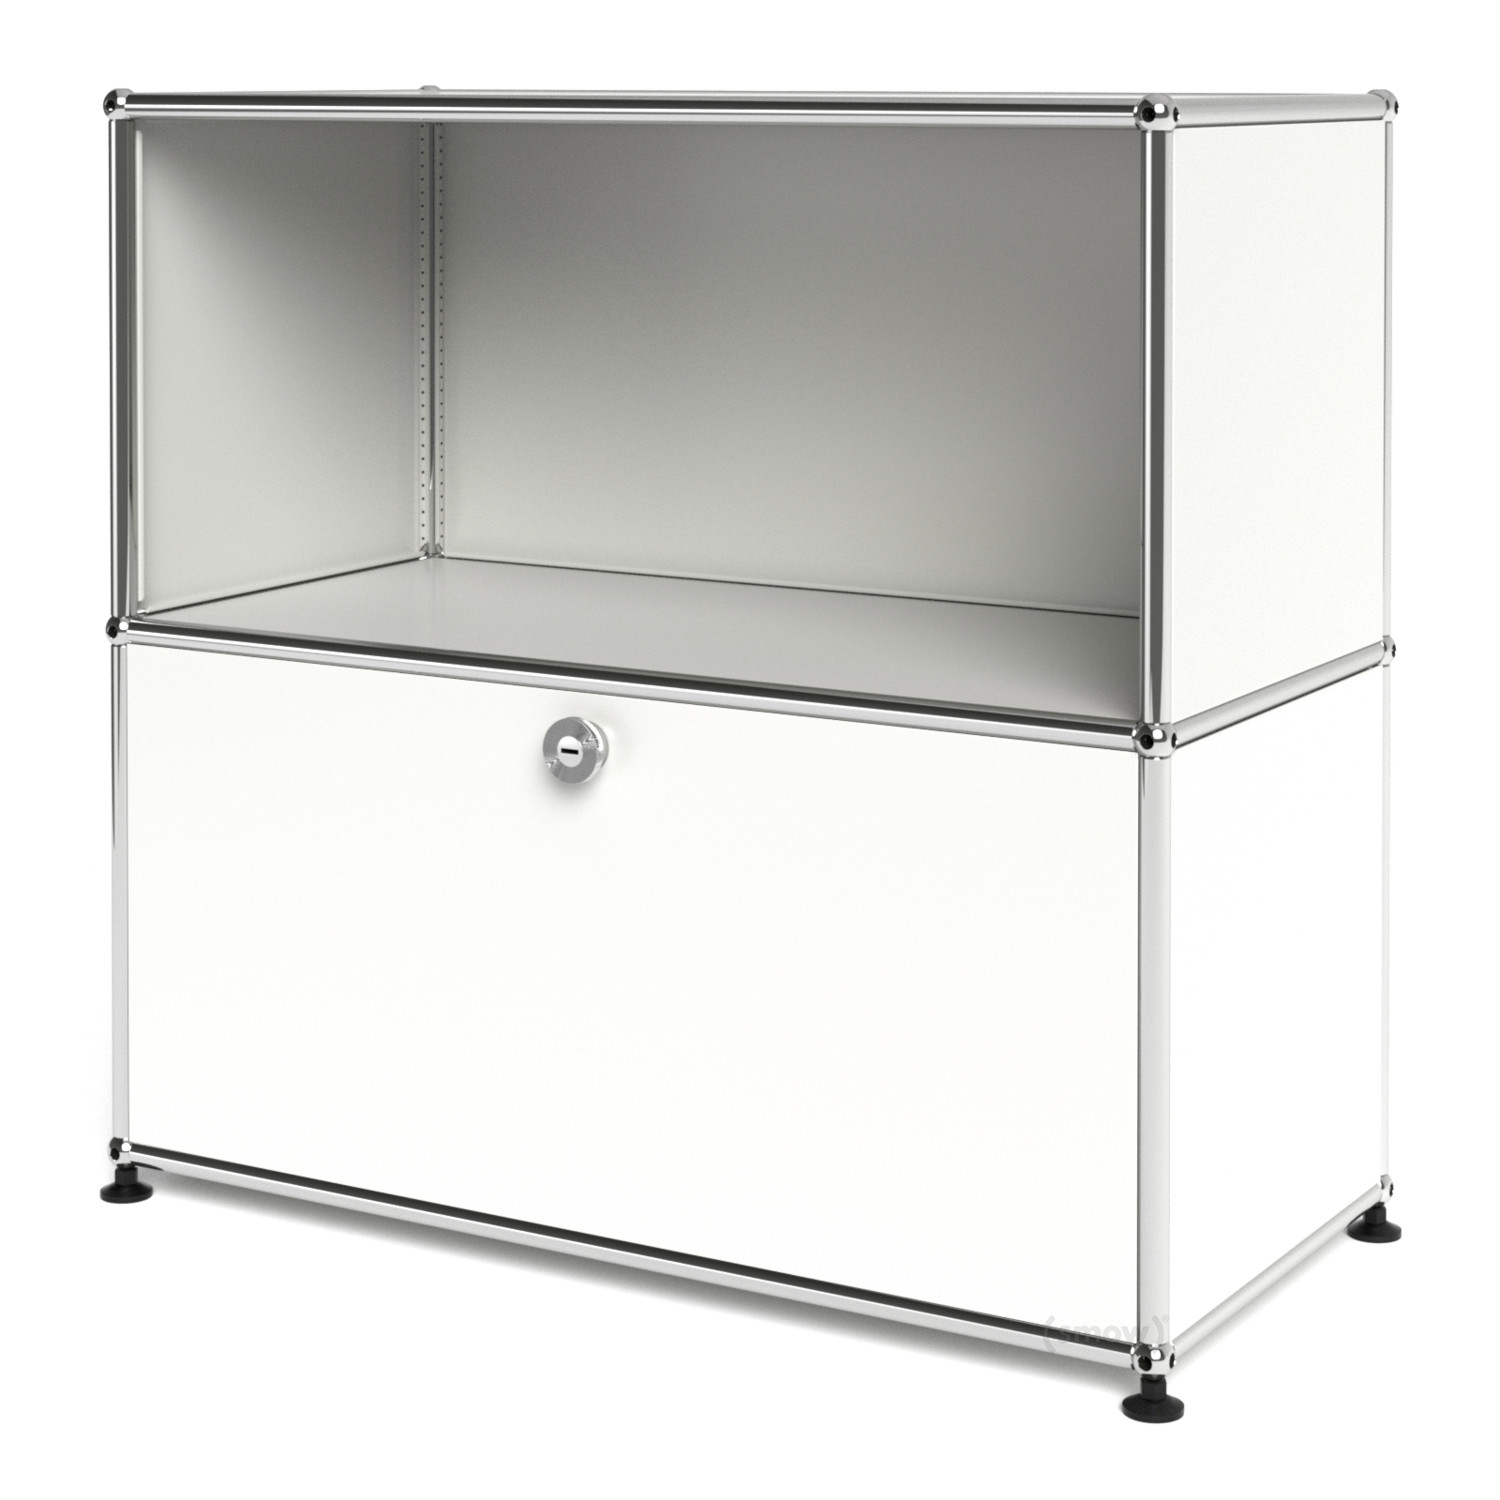 Usm Haller Sideboard M With 1 Drop-Down Doorfritz Haller & Paul pertaining to Girard 4 Door Sideboards (Image 26 of 30)